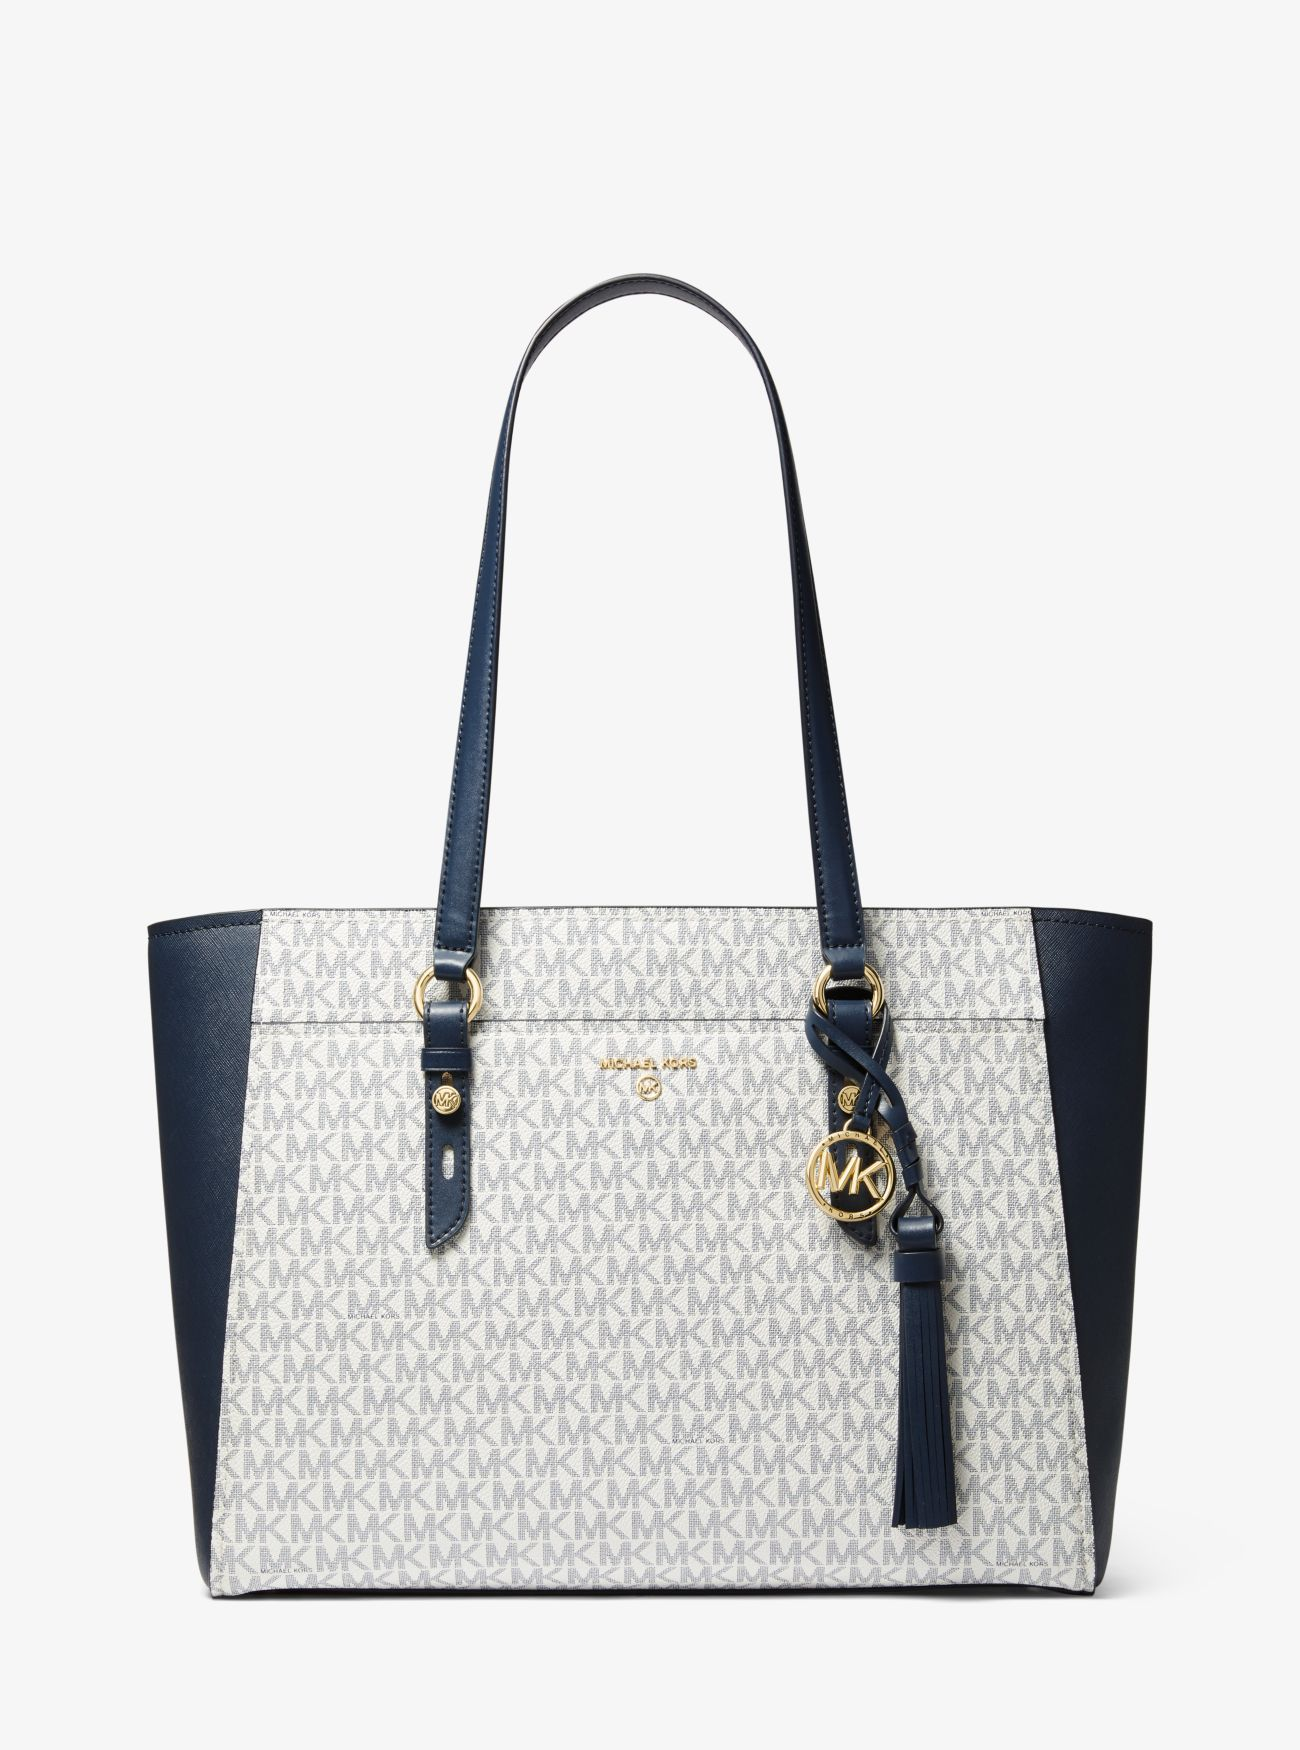 Michael Kors Labor Day Sale + Extra 25% off Markdowns!